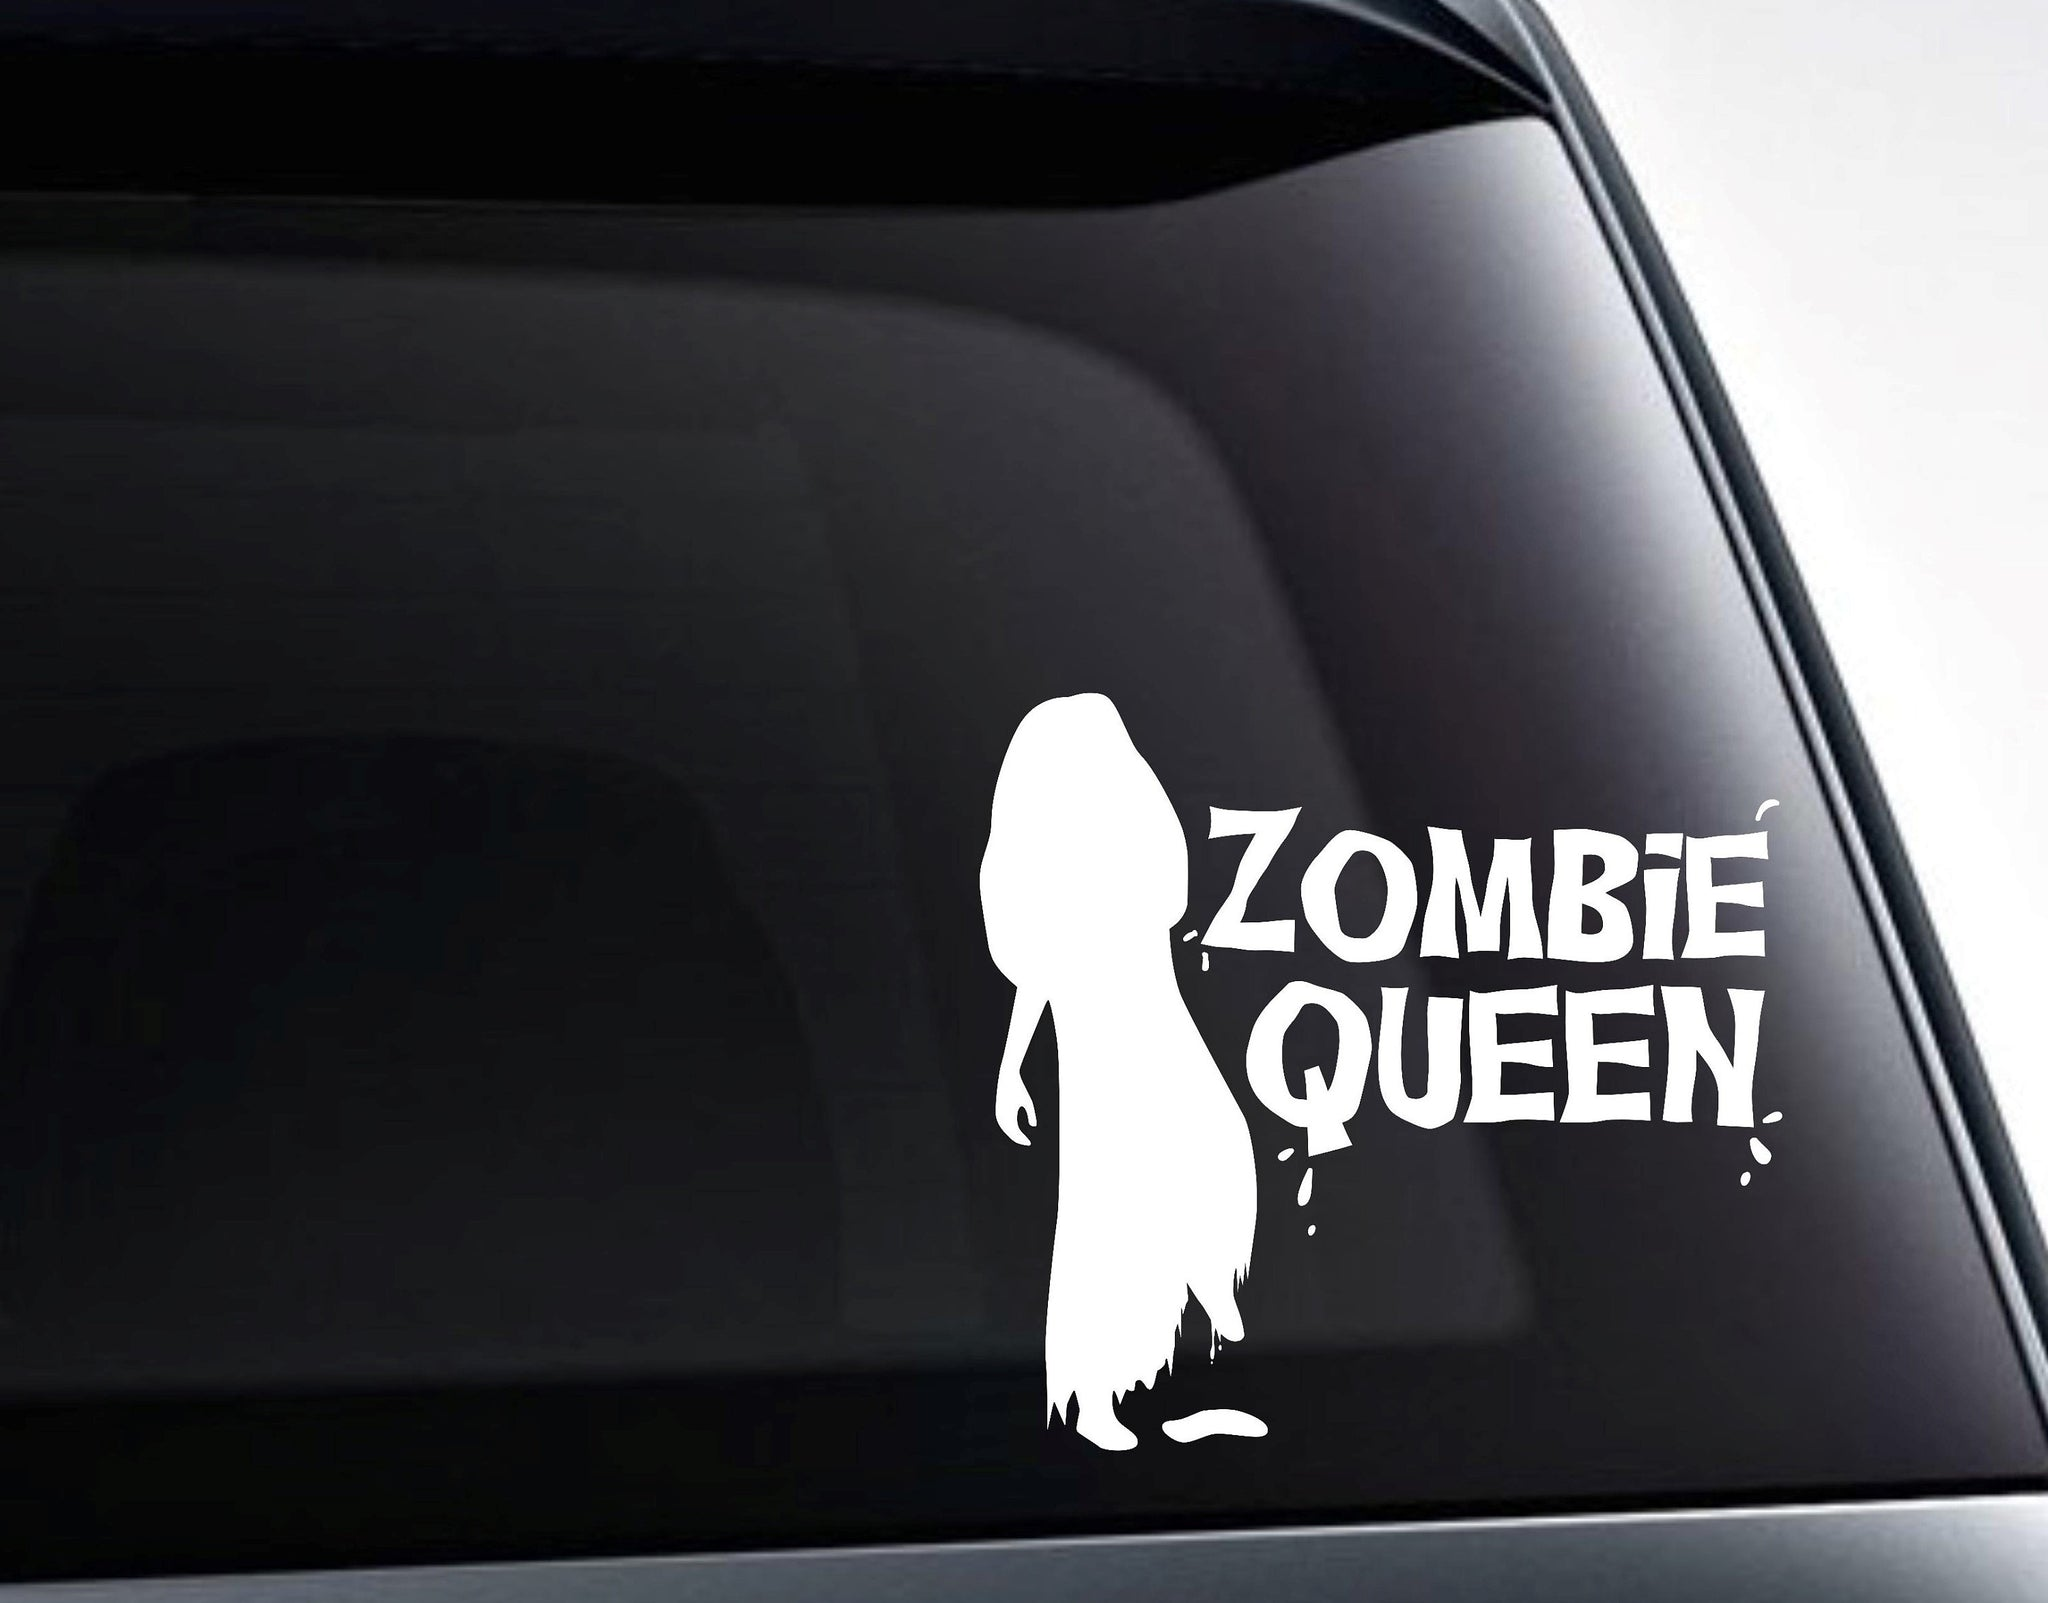 Zombie Queen Vinyl Decal Sticker